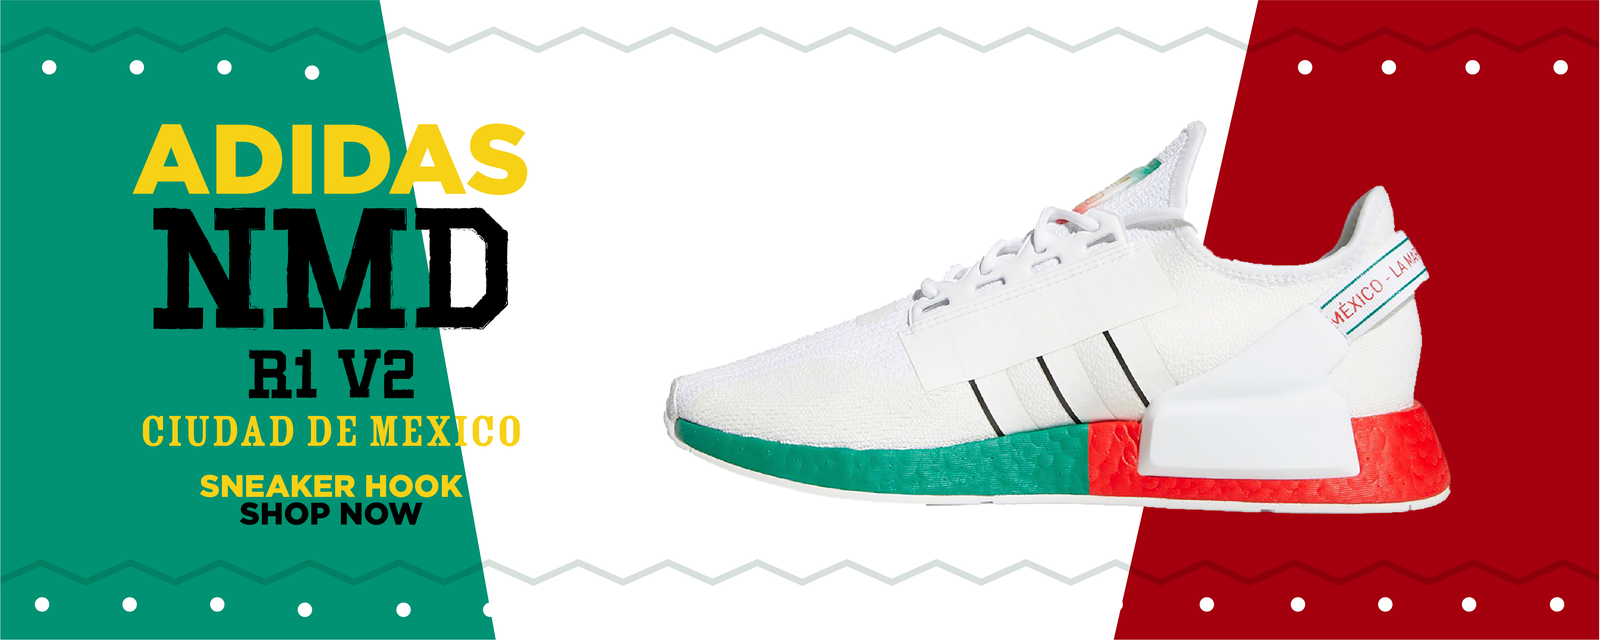 NMD R1 V2 Ciudad De Mexico Clothings to match Sneakers | Clothing to match Adidas NMD R1 V2 Ciudad De Mexico Shoes